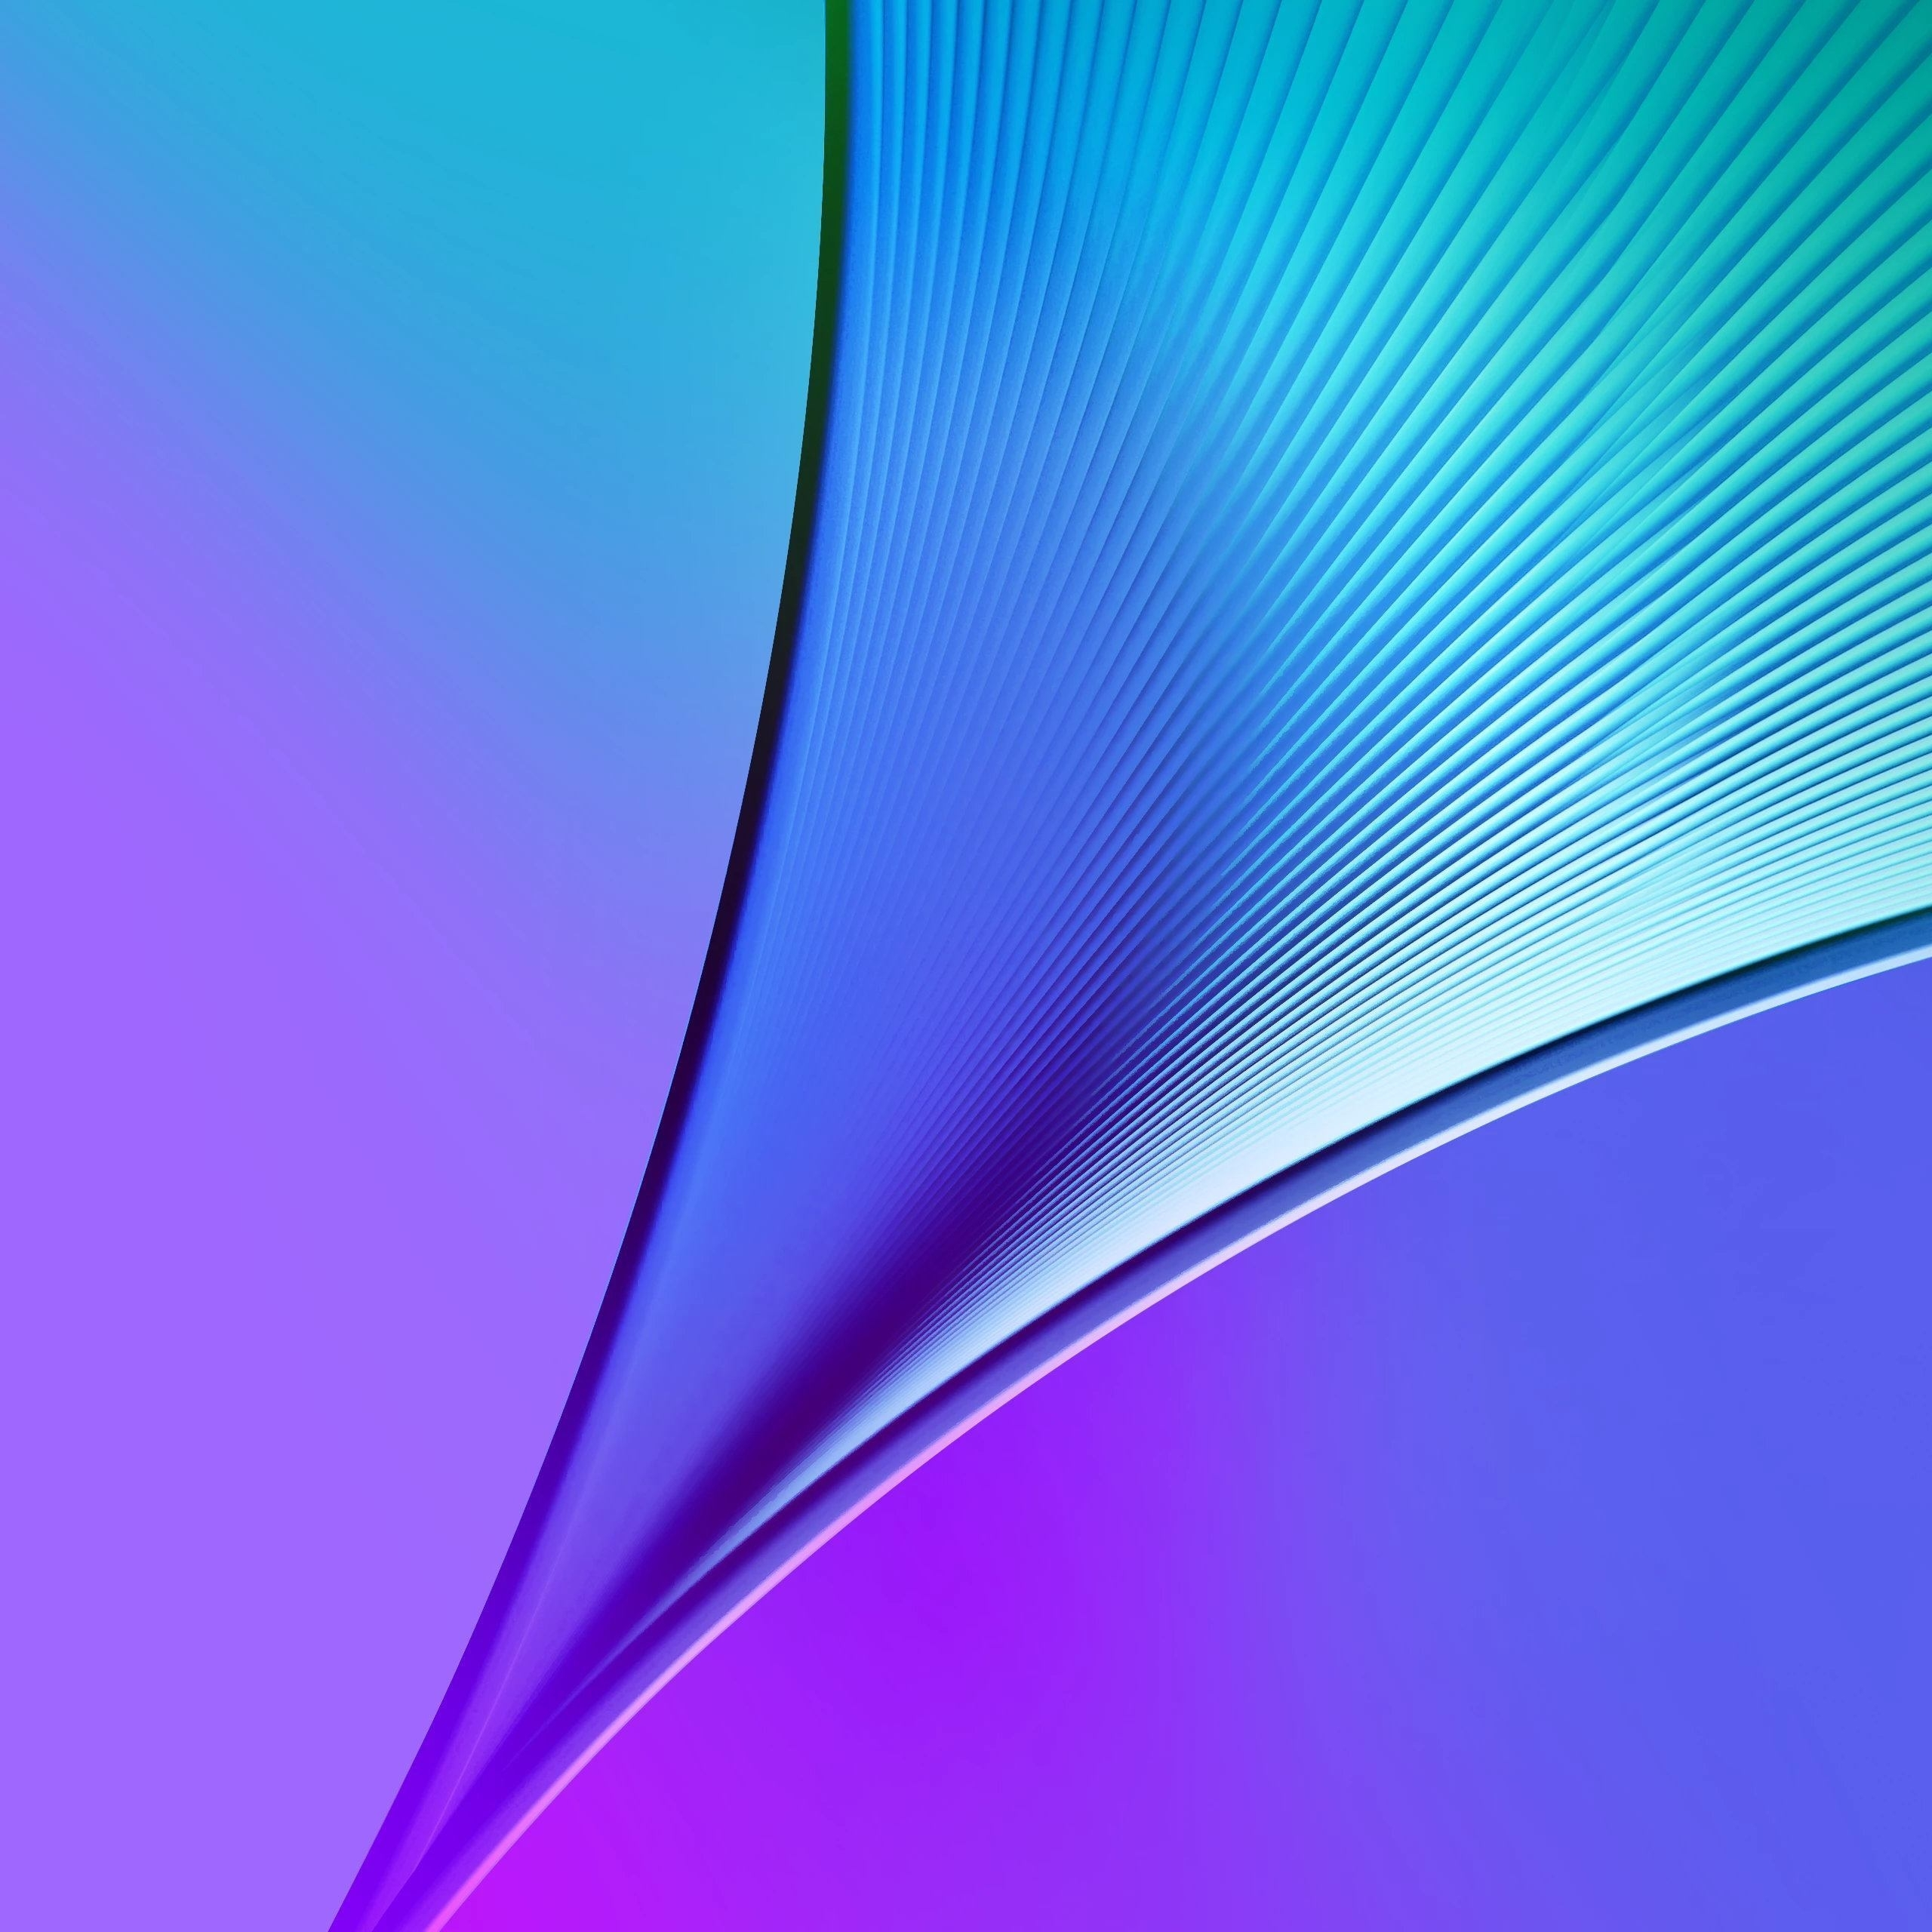 note 5 stock wallpapers | galaxy s6 edge plus stock wallpapers